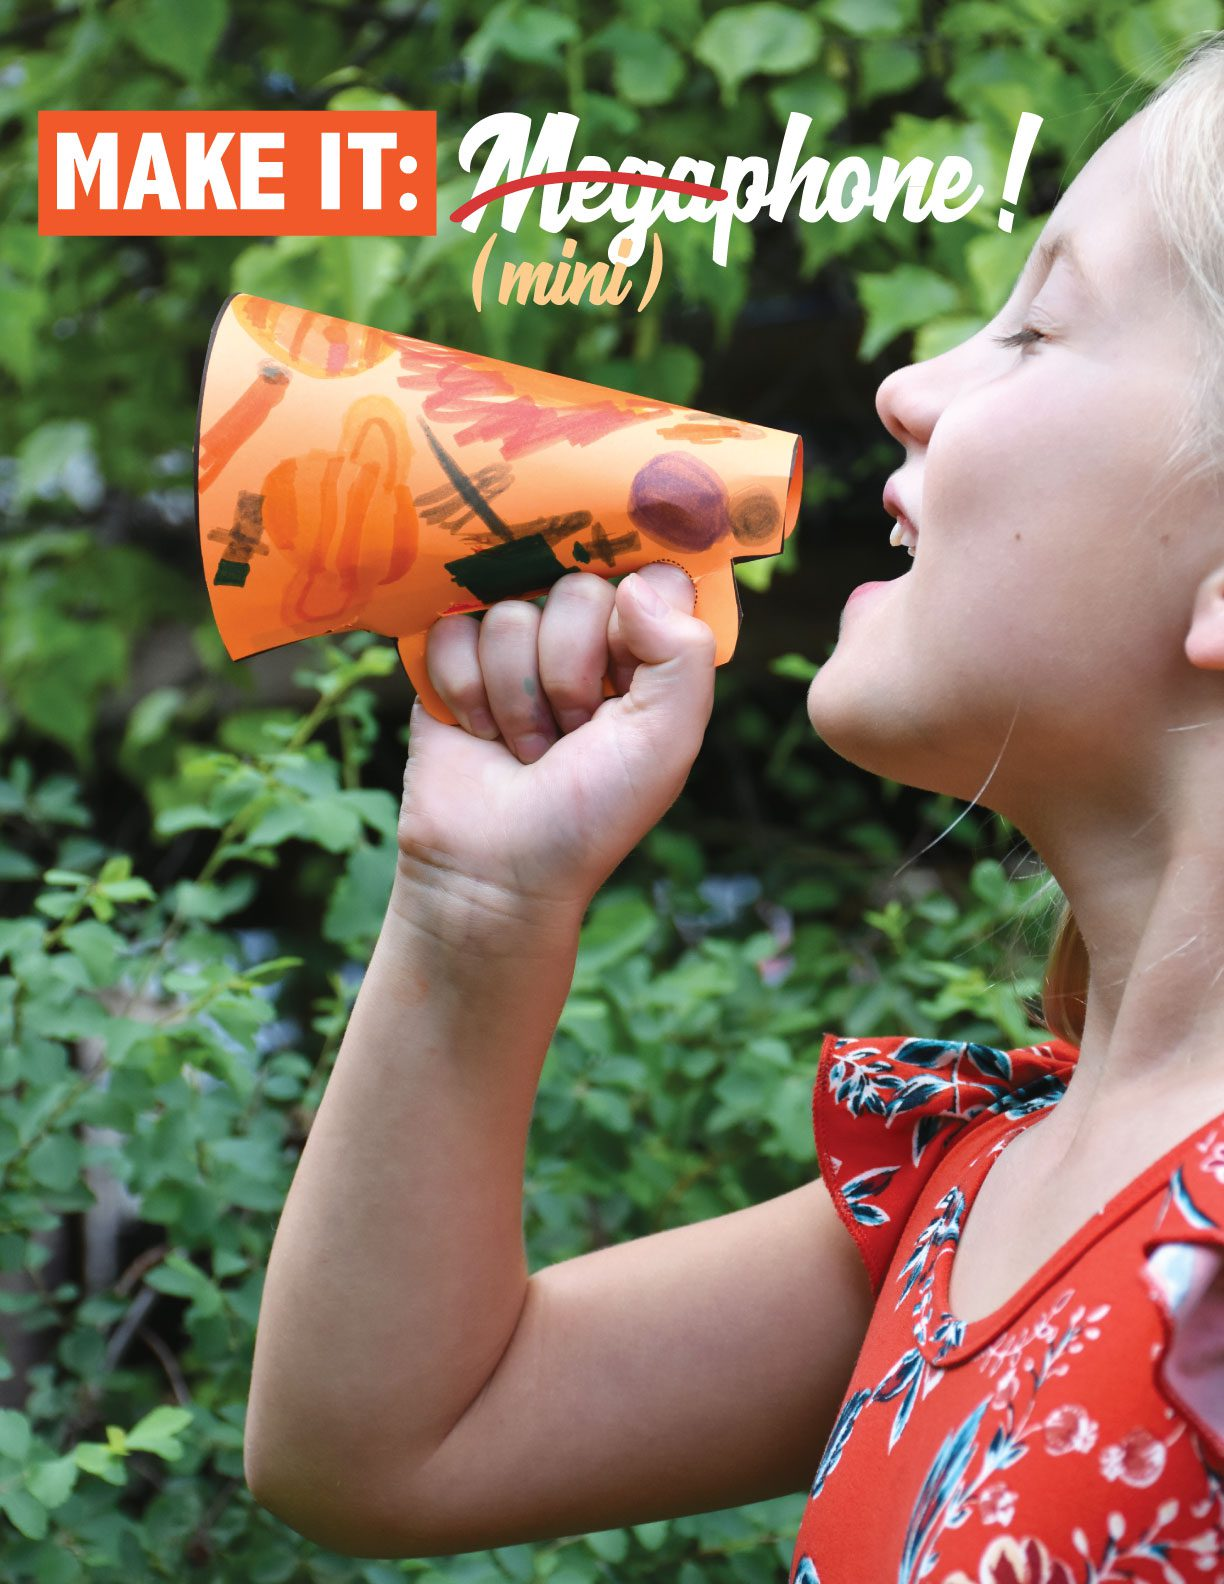 Learn how to make mini megaphones!